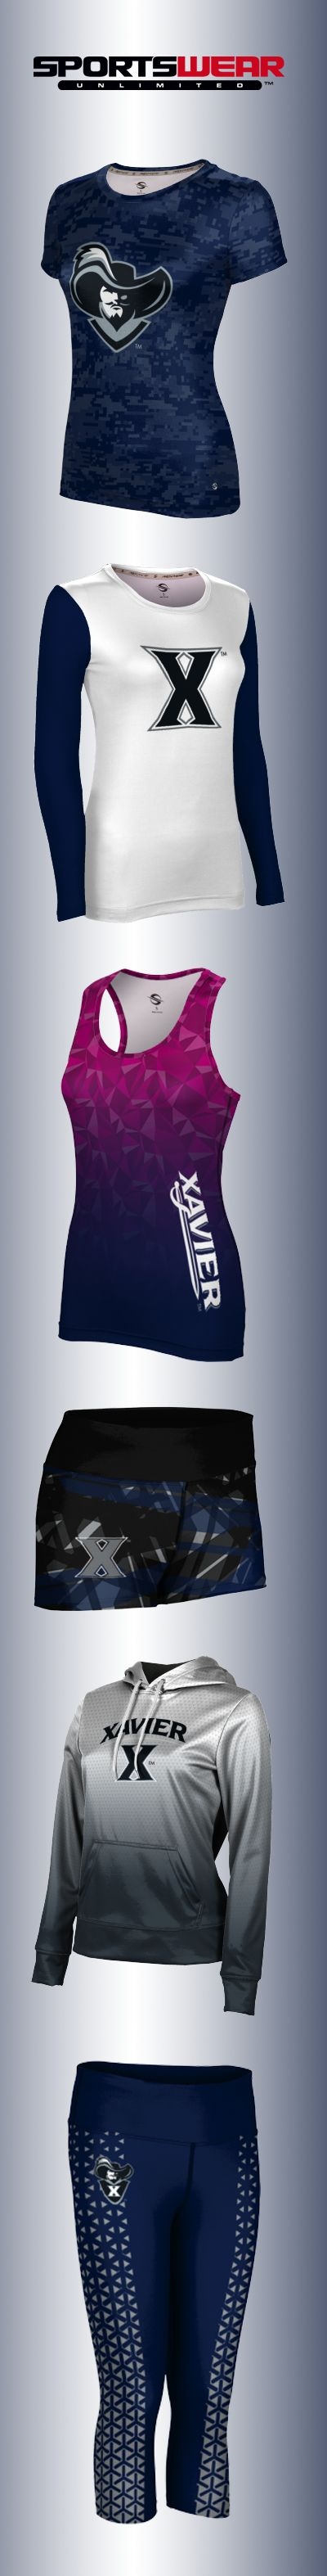 Shop Xavier Musketeers activewear! Tees, hoodies, tanks, sports bras, shorts and capris available in customizable school colors.